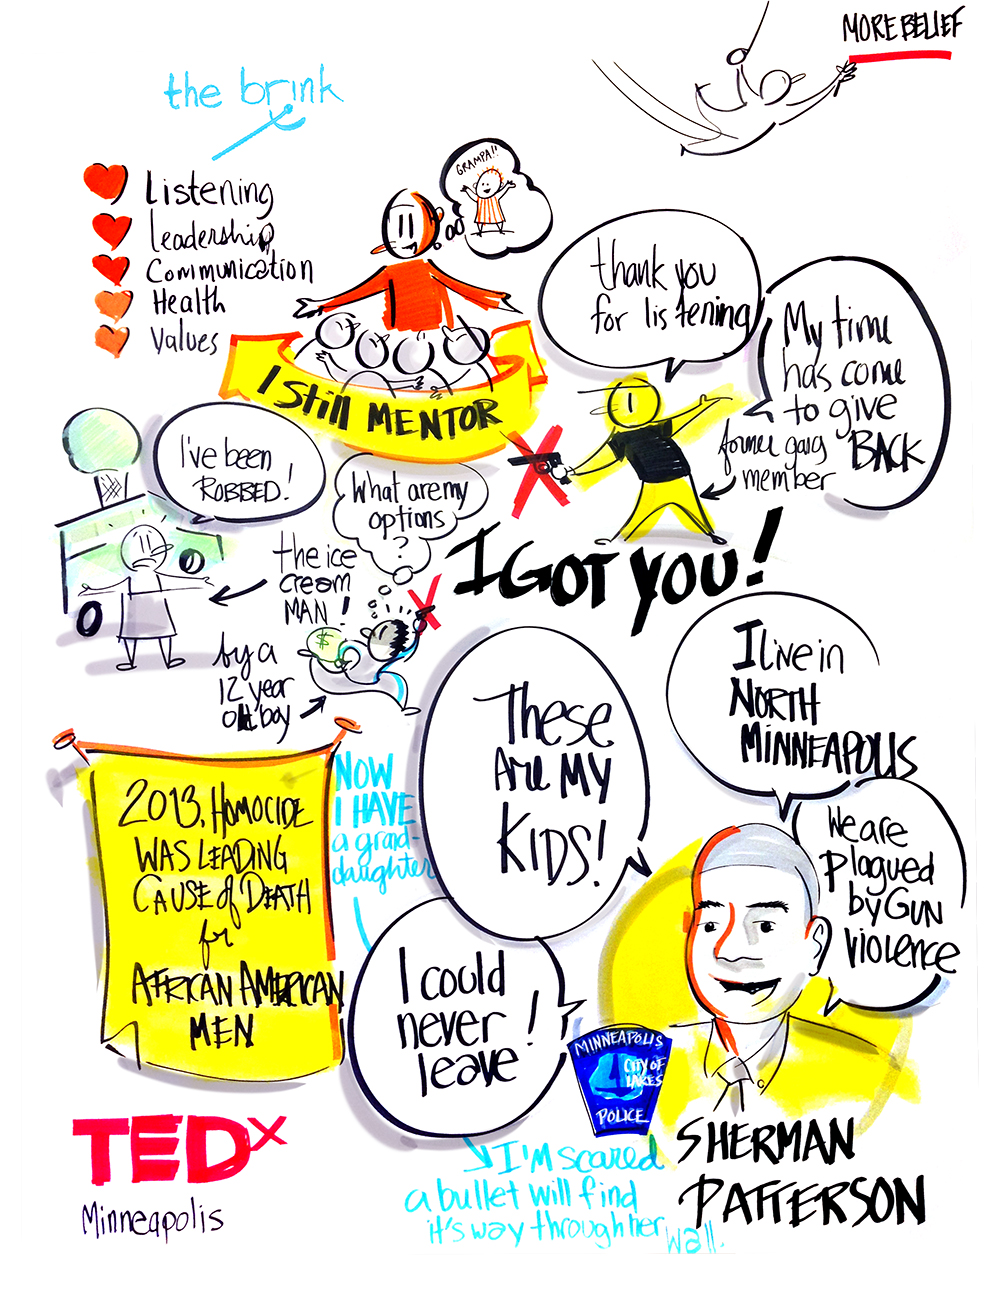 Copy of GRAPHIC RECORDING FROM TED X CONFERENCE | MORE BELIEF